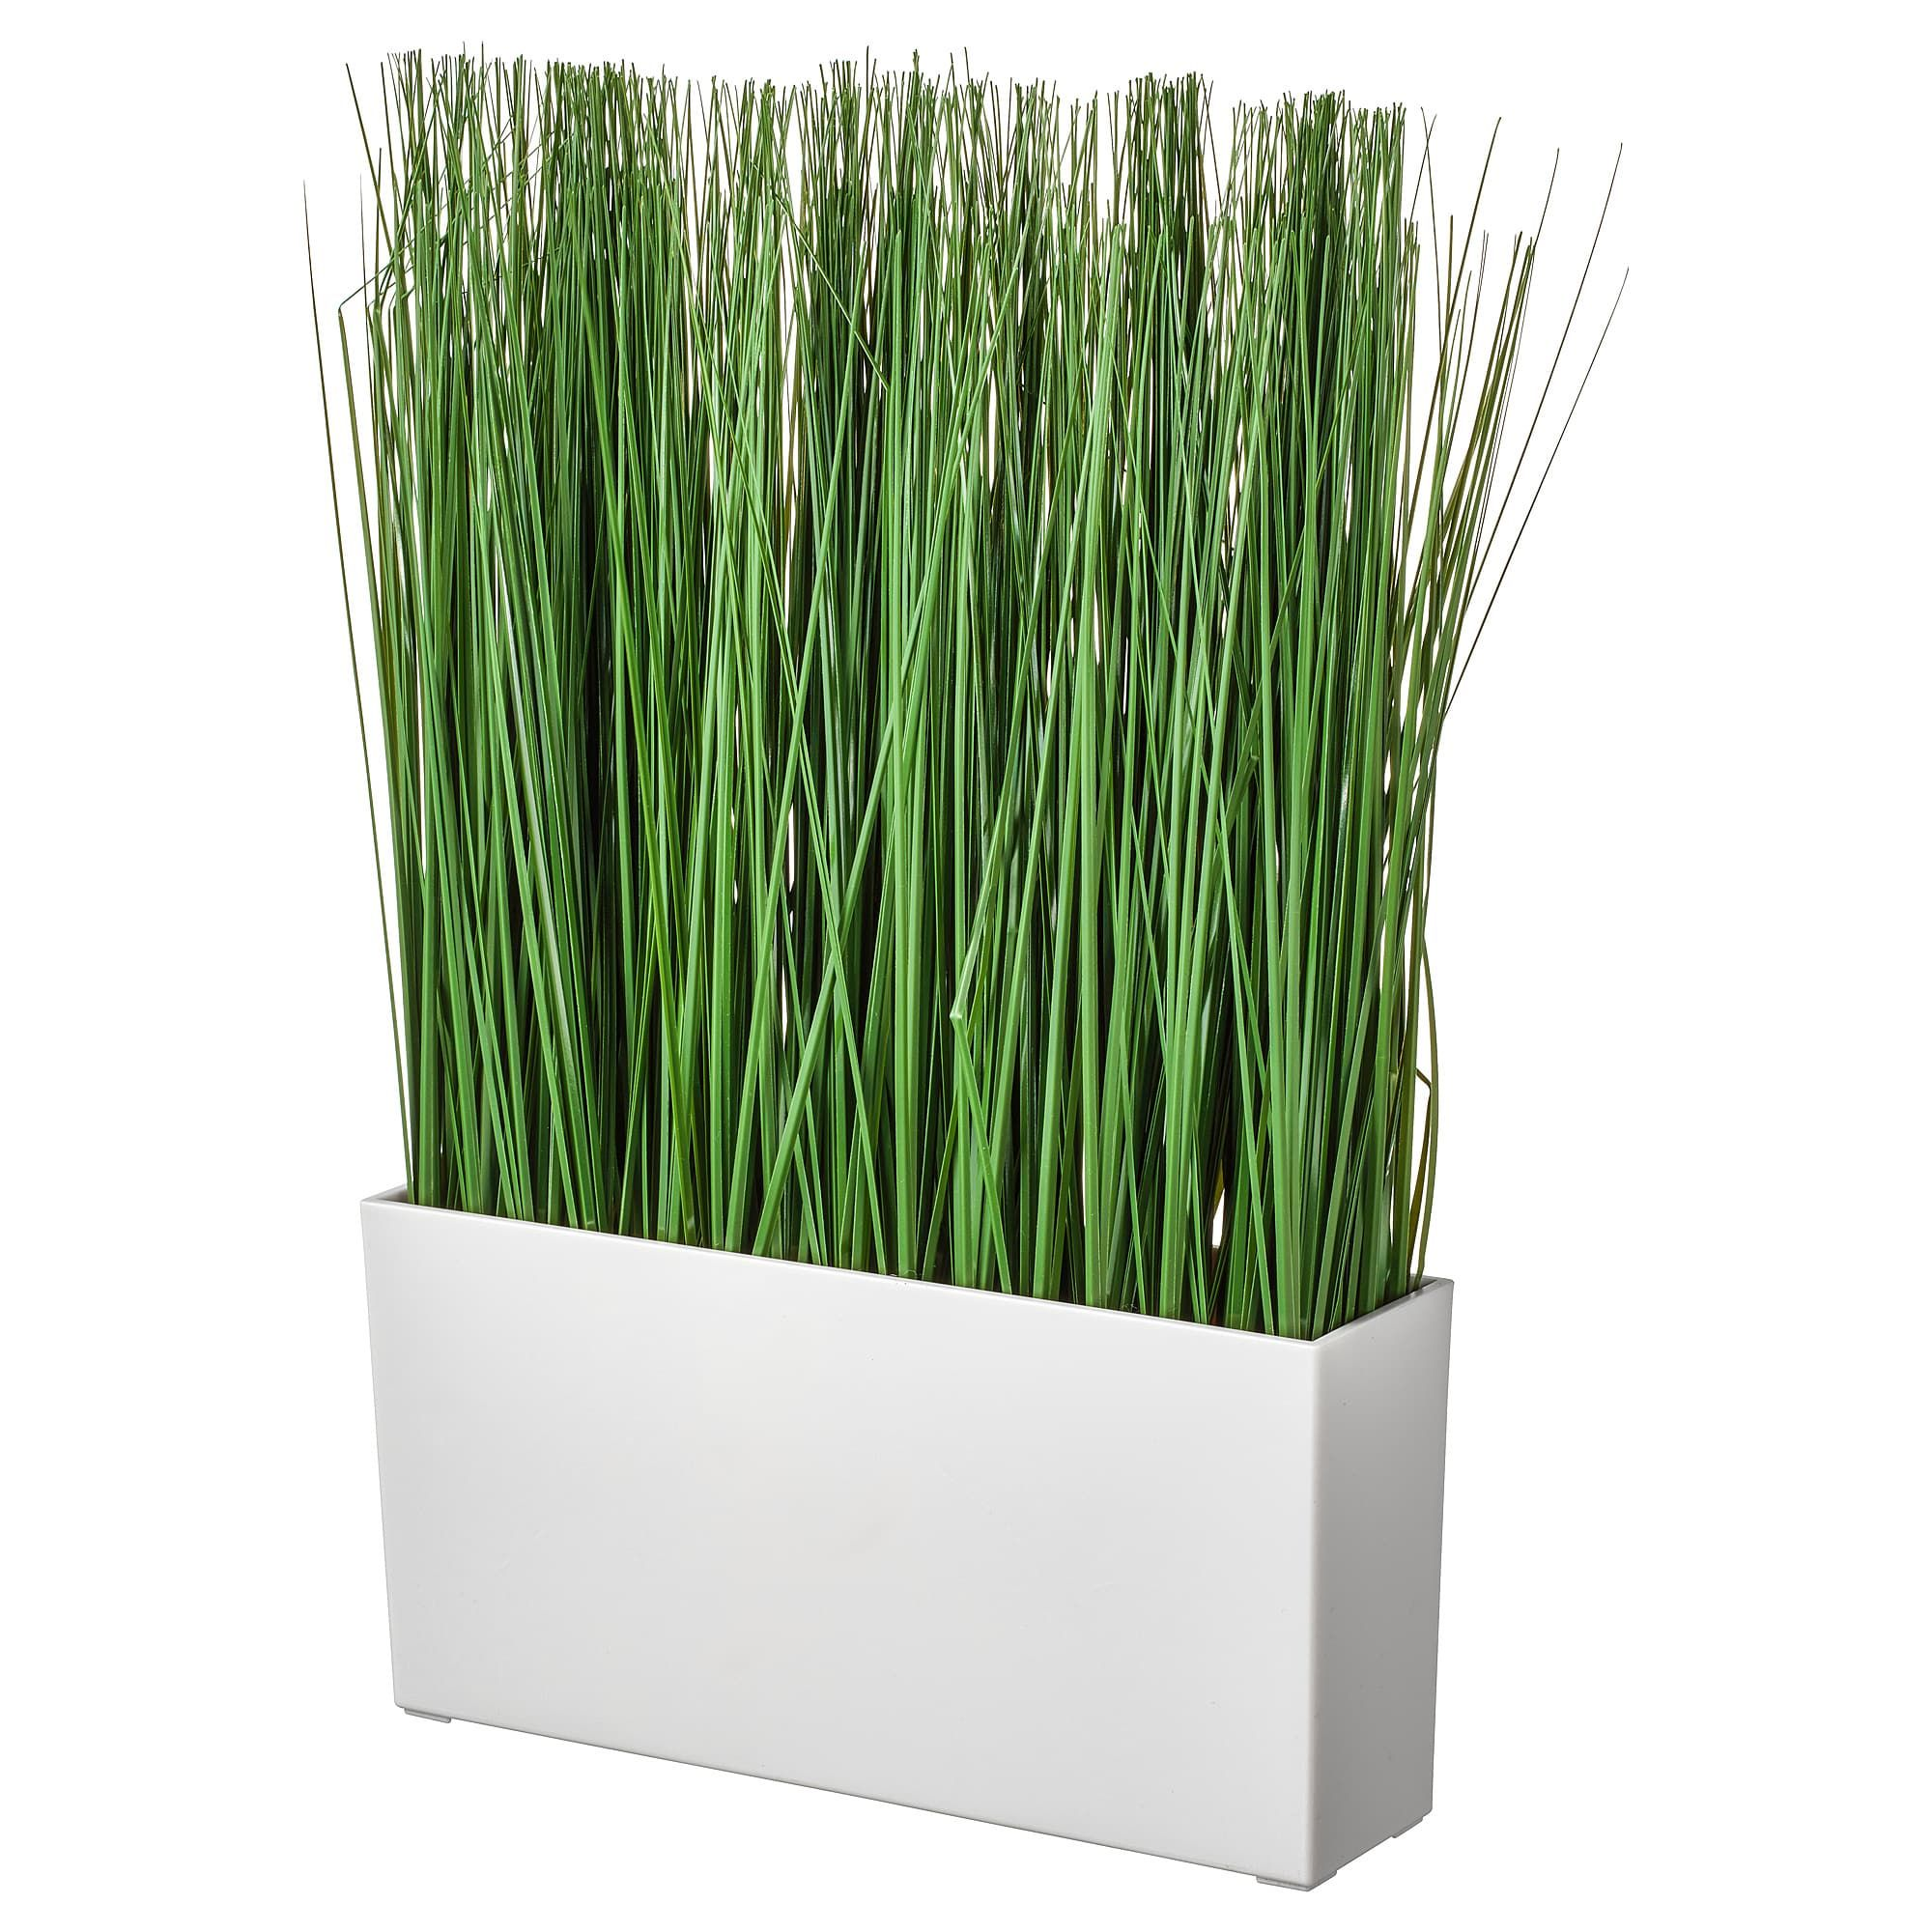 Fejka Artificial Potted Plant With Pot Grass Artificial Potted Plants Artificial Plants Artificial Grass